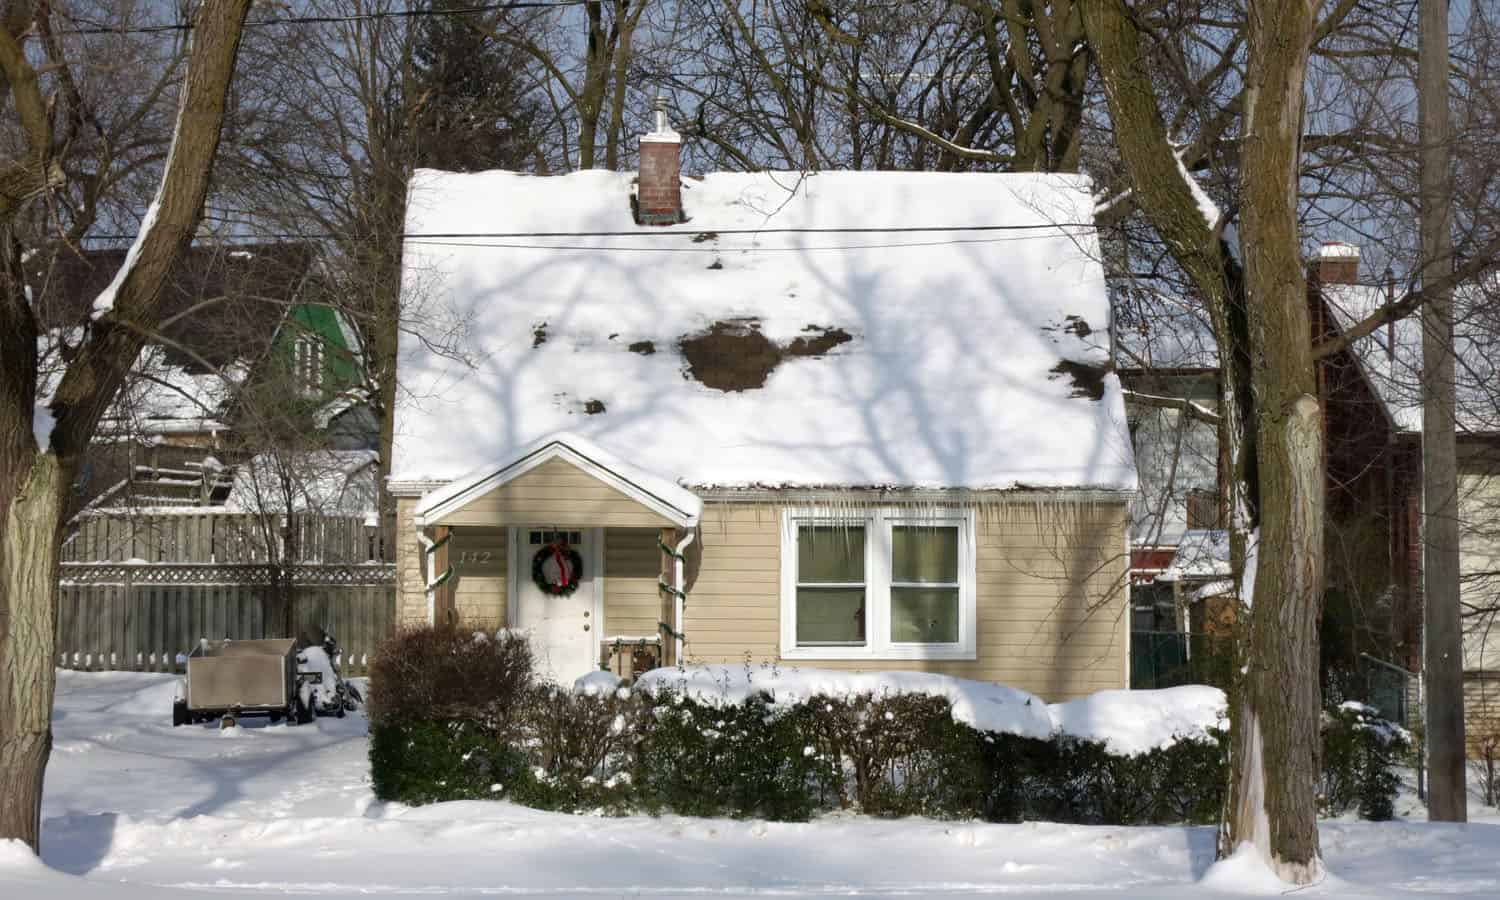 This typical house on Spadina Road East is characterized by its compact, rational plan, its modest size, its steep gabled roof, and its small porch